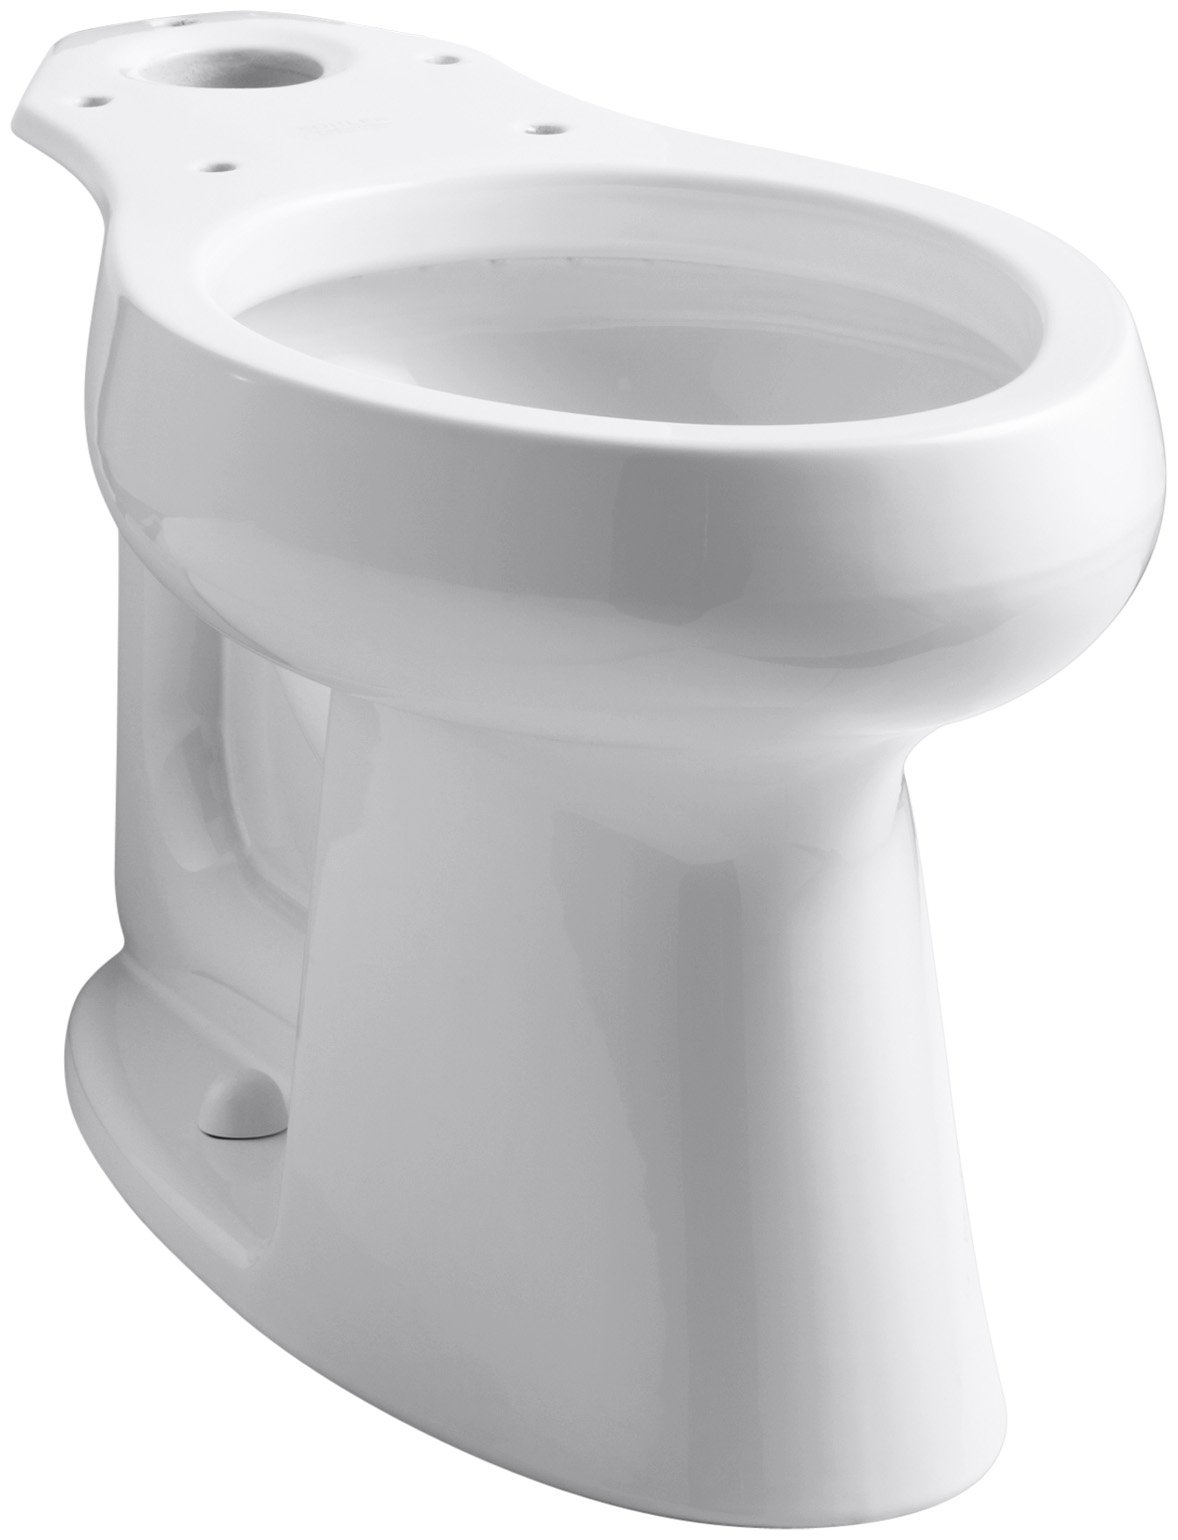 Kohler K-4199-0 Toilet Repair Kits, White by Kohler